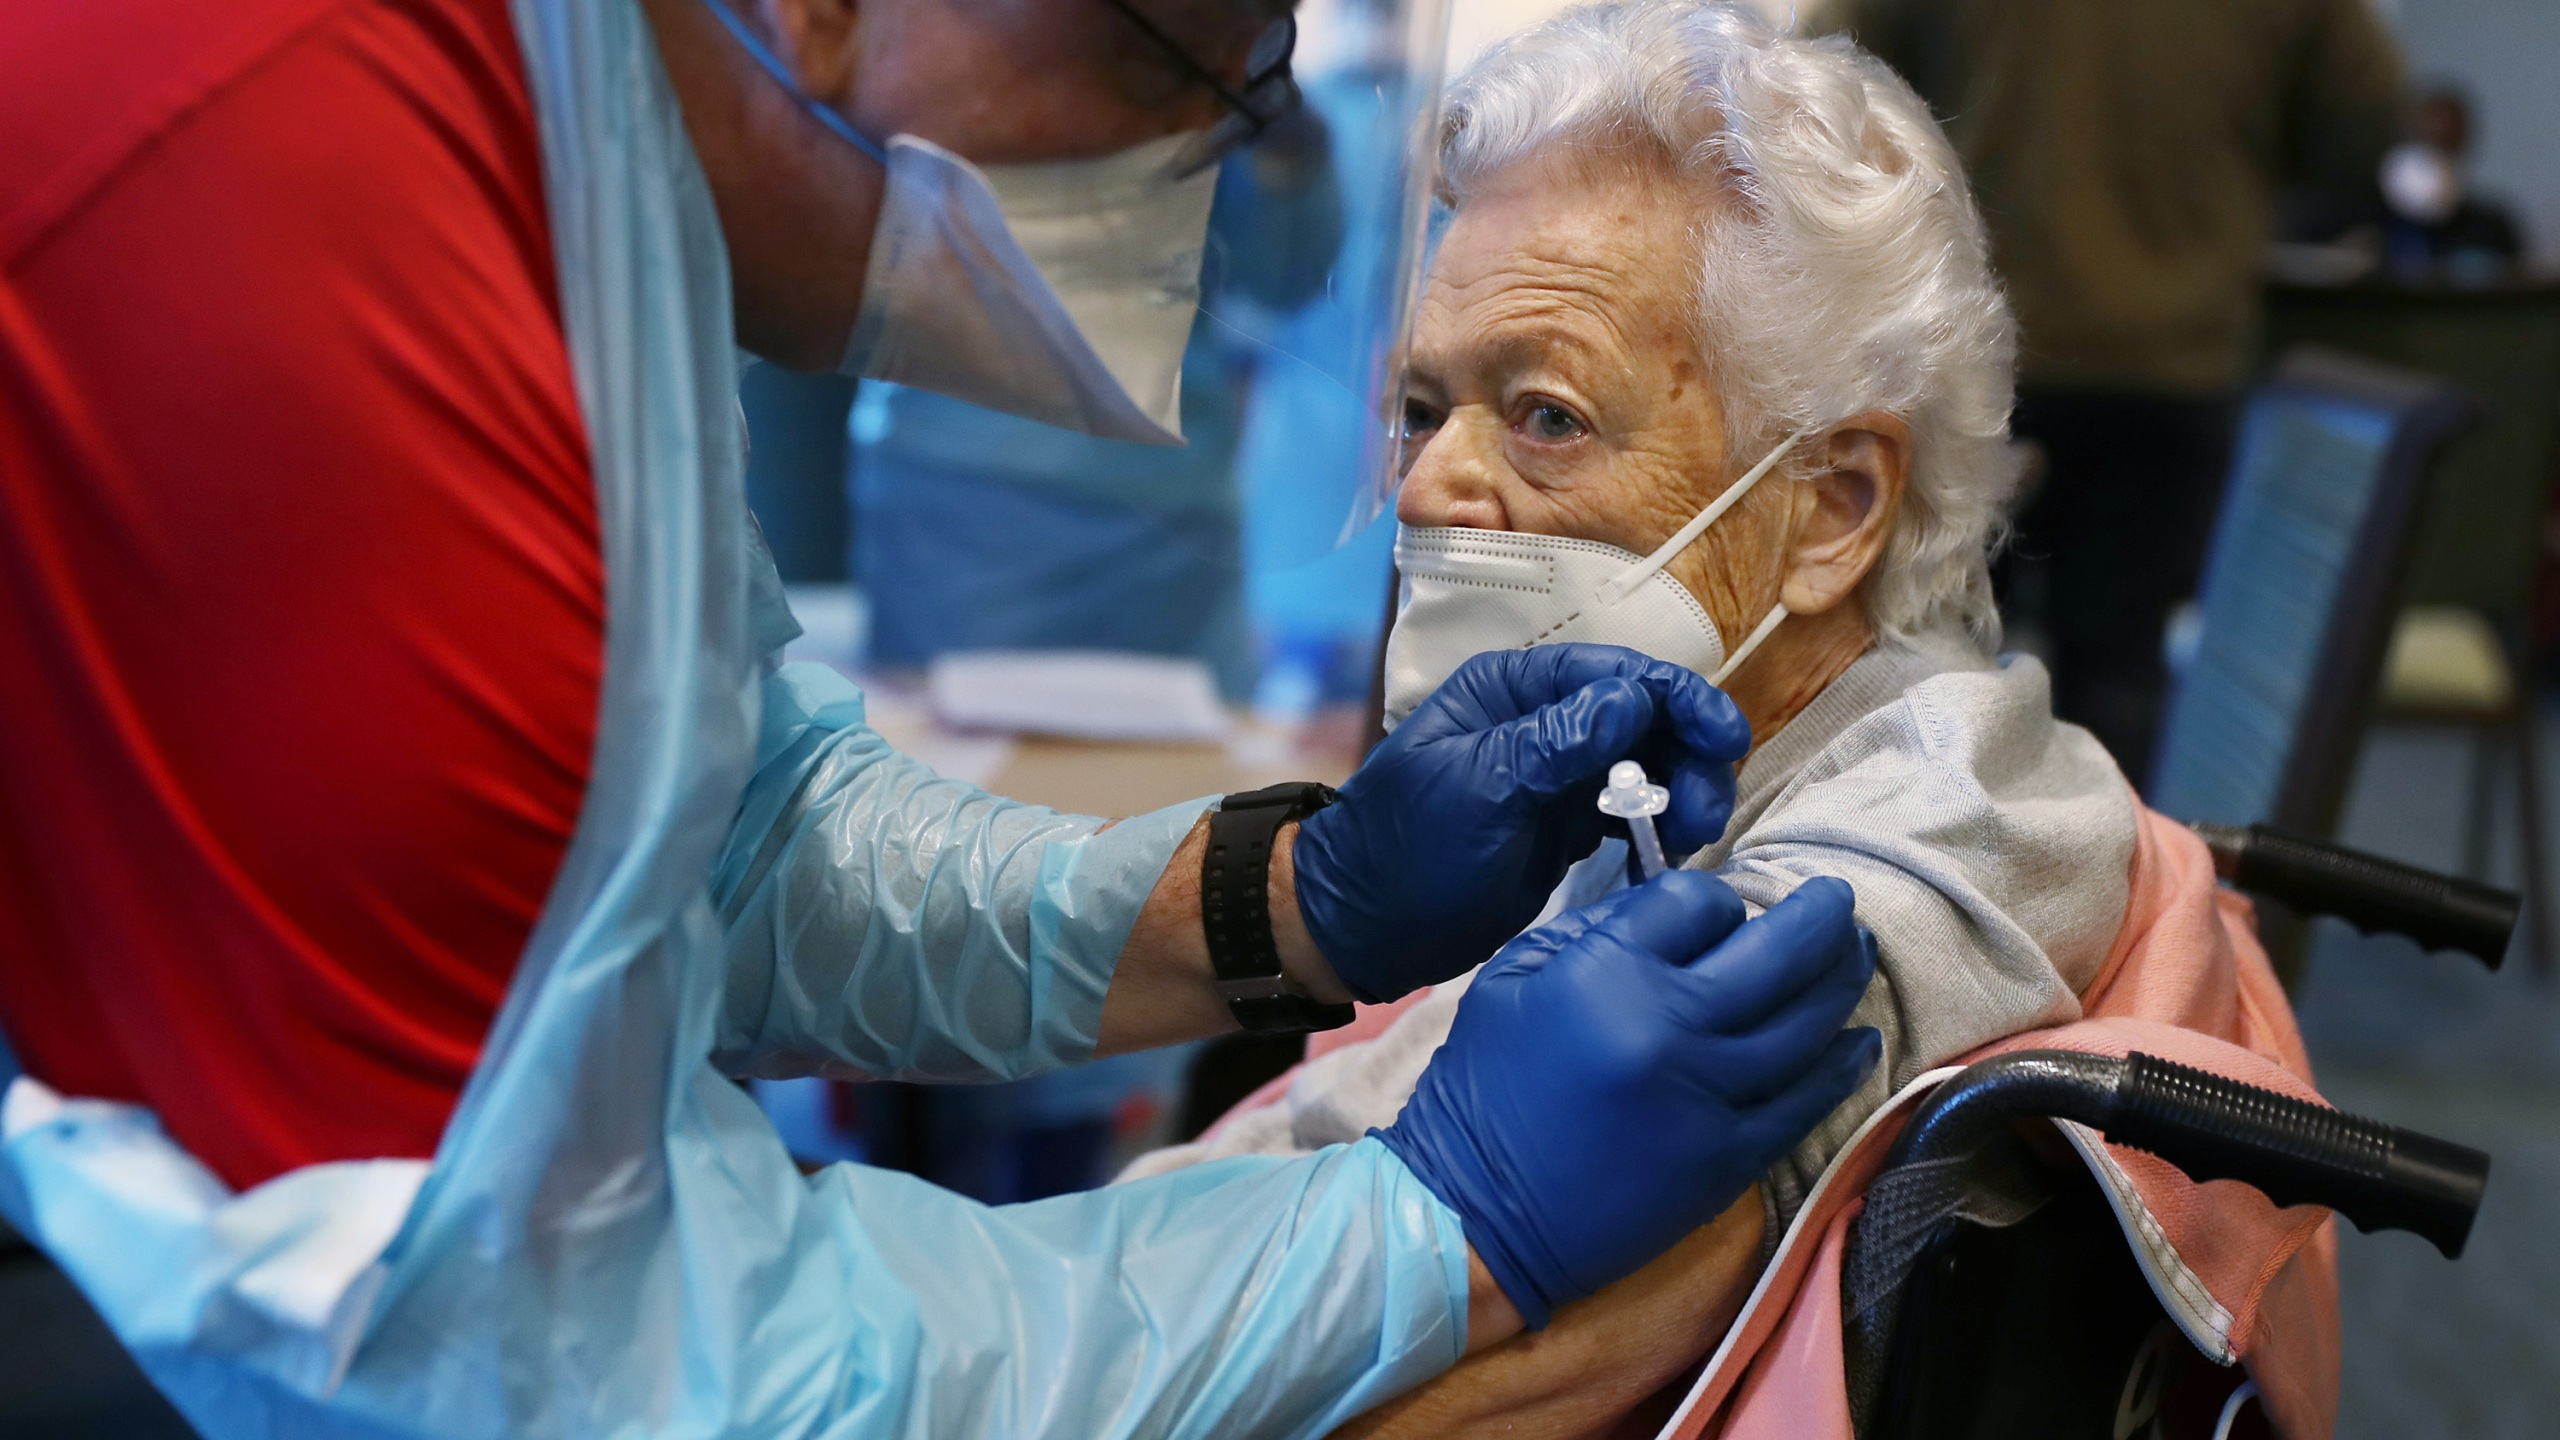 A healthcare worker working with the Florida Department of Health in Broward administers a Pfizer-BioNtech COVID-19 vaccine to Nancy Mathews, 90, at the John Knox Village Continuing Care Retirement Community on January 6 in Pompano Beach, Florida. (Photo by Joe Raedle/Getty Images)